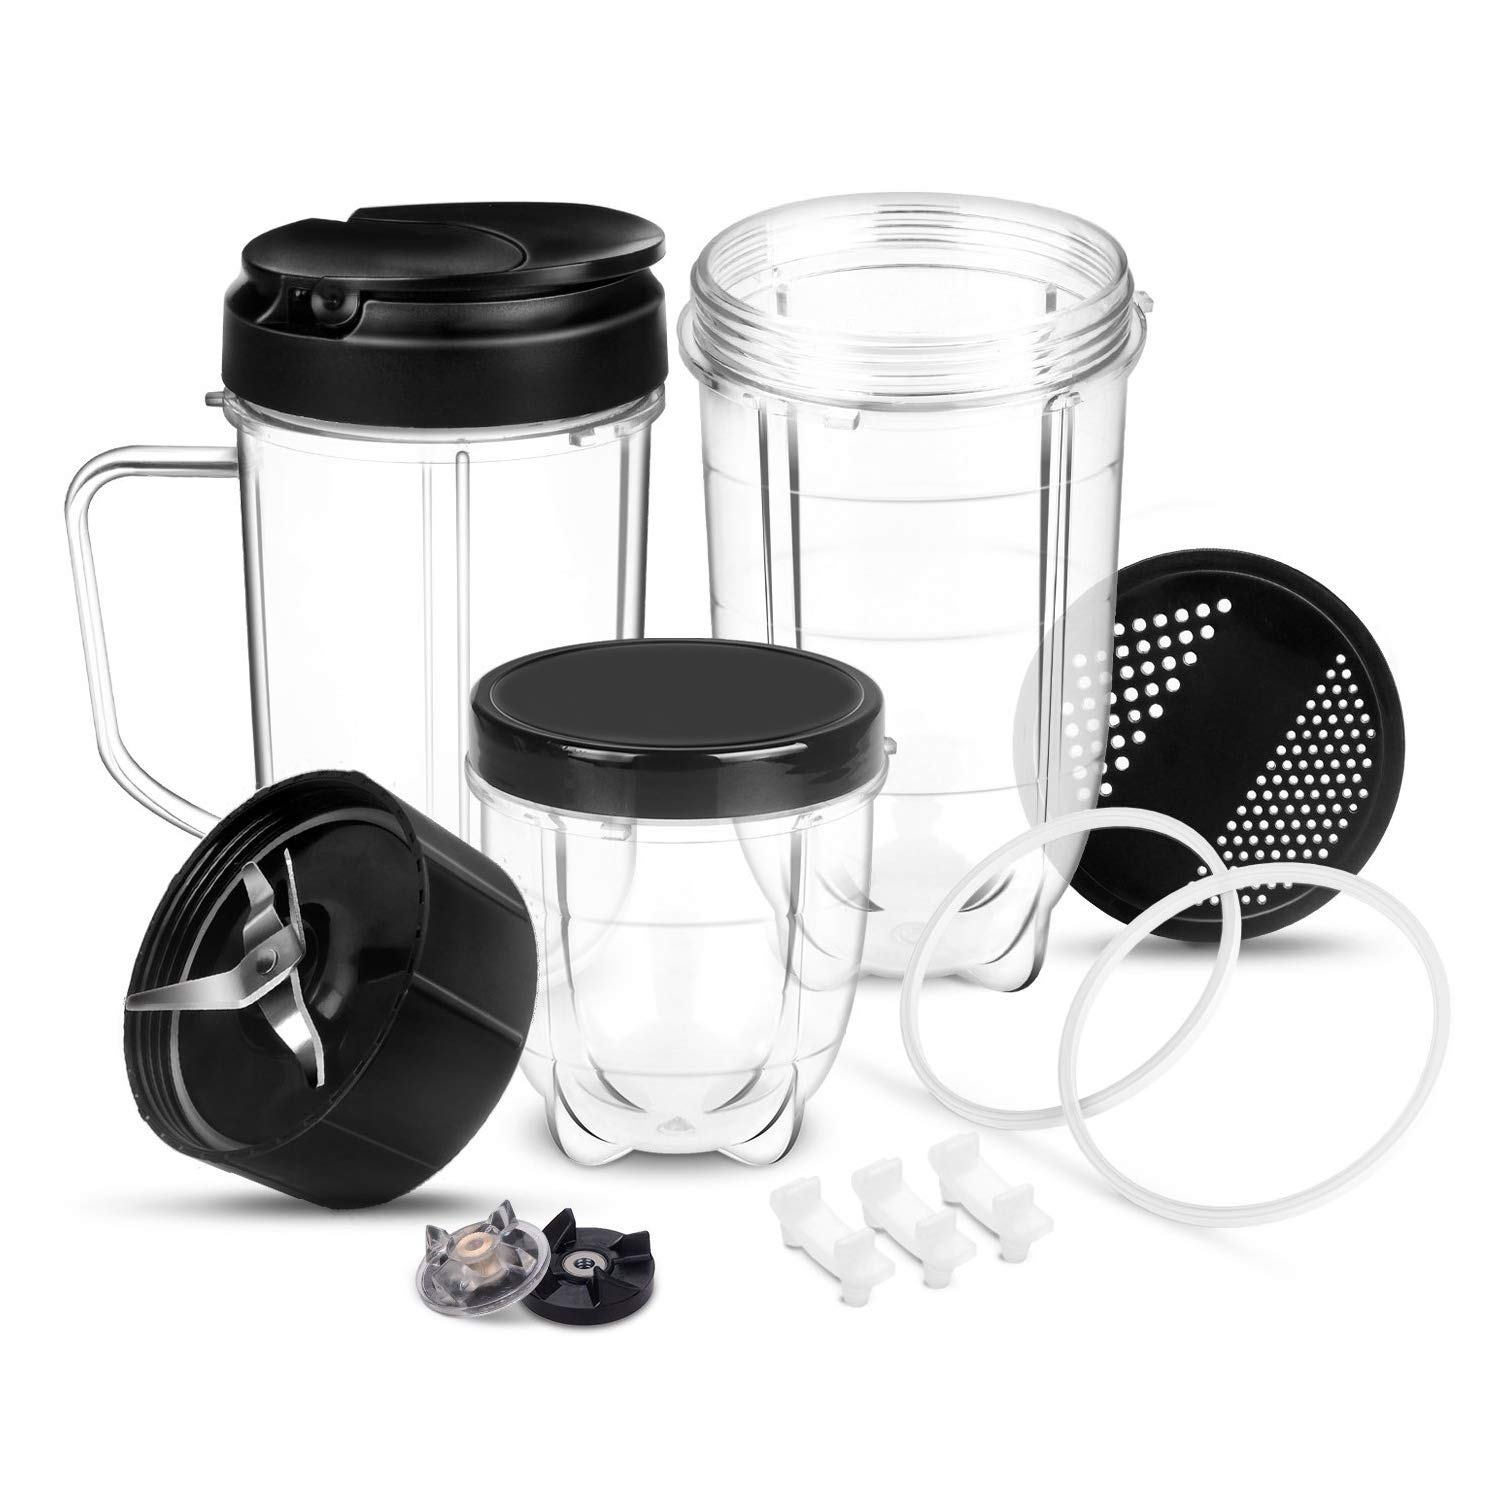 Magic Bullet Blender Replacement Parts Cross Blade Cups Lids Gaskets Gear 14 Piece Set Compatible with Magic Bullet Blender Juicer Mixer 250W MB1001 Accessories